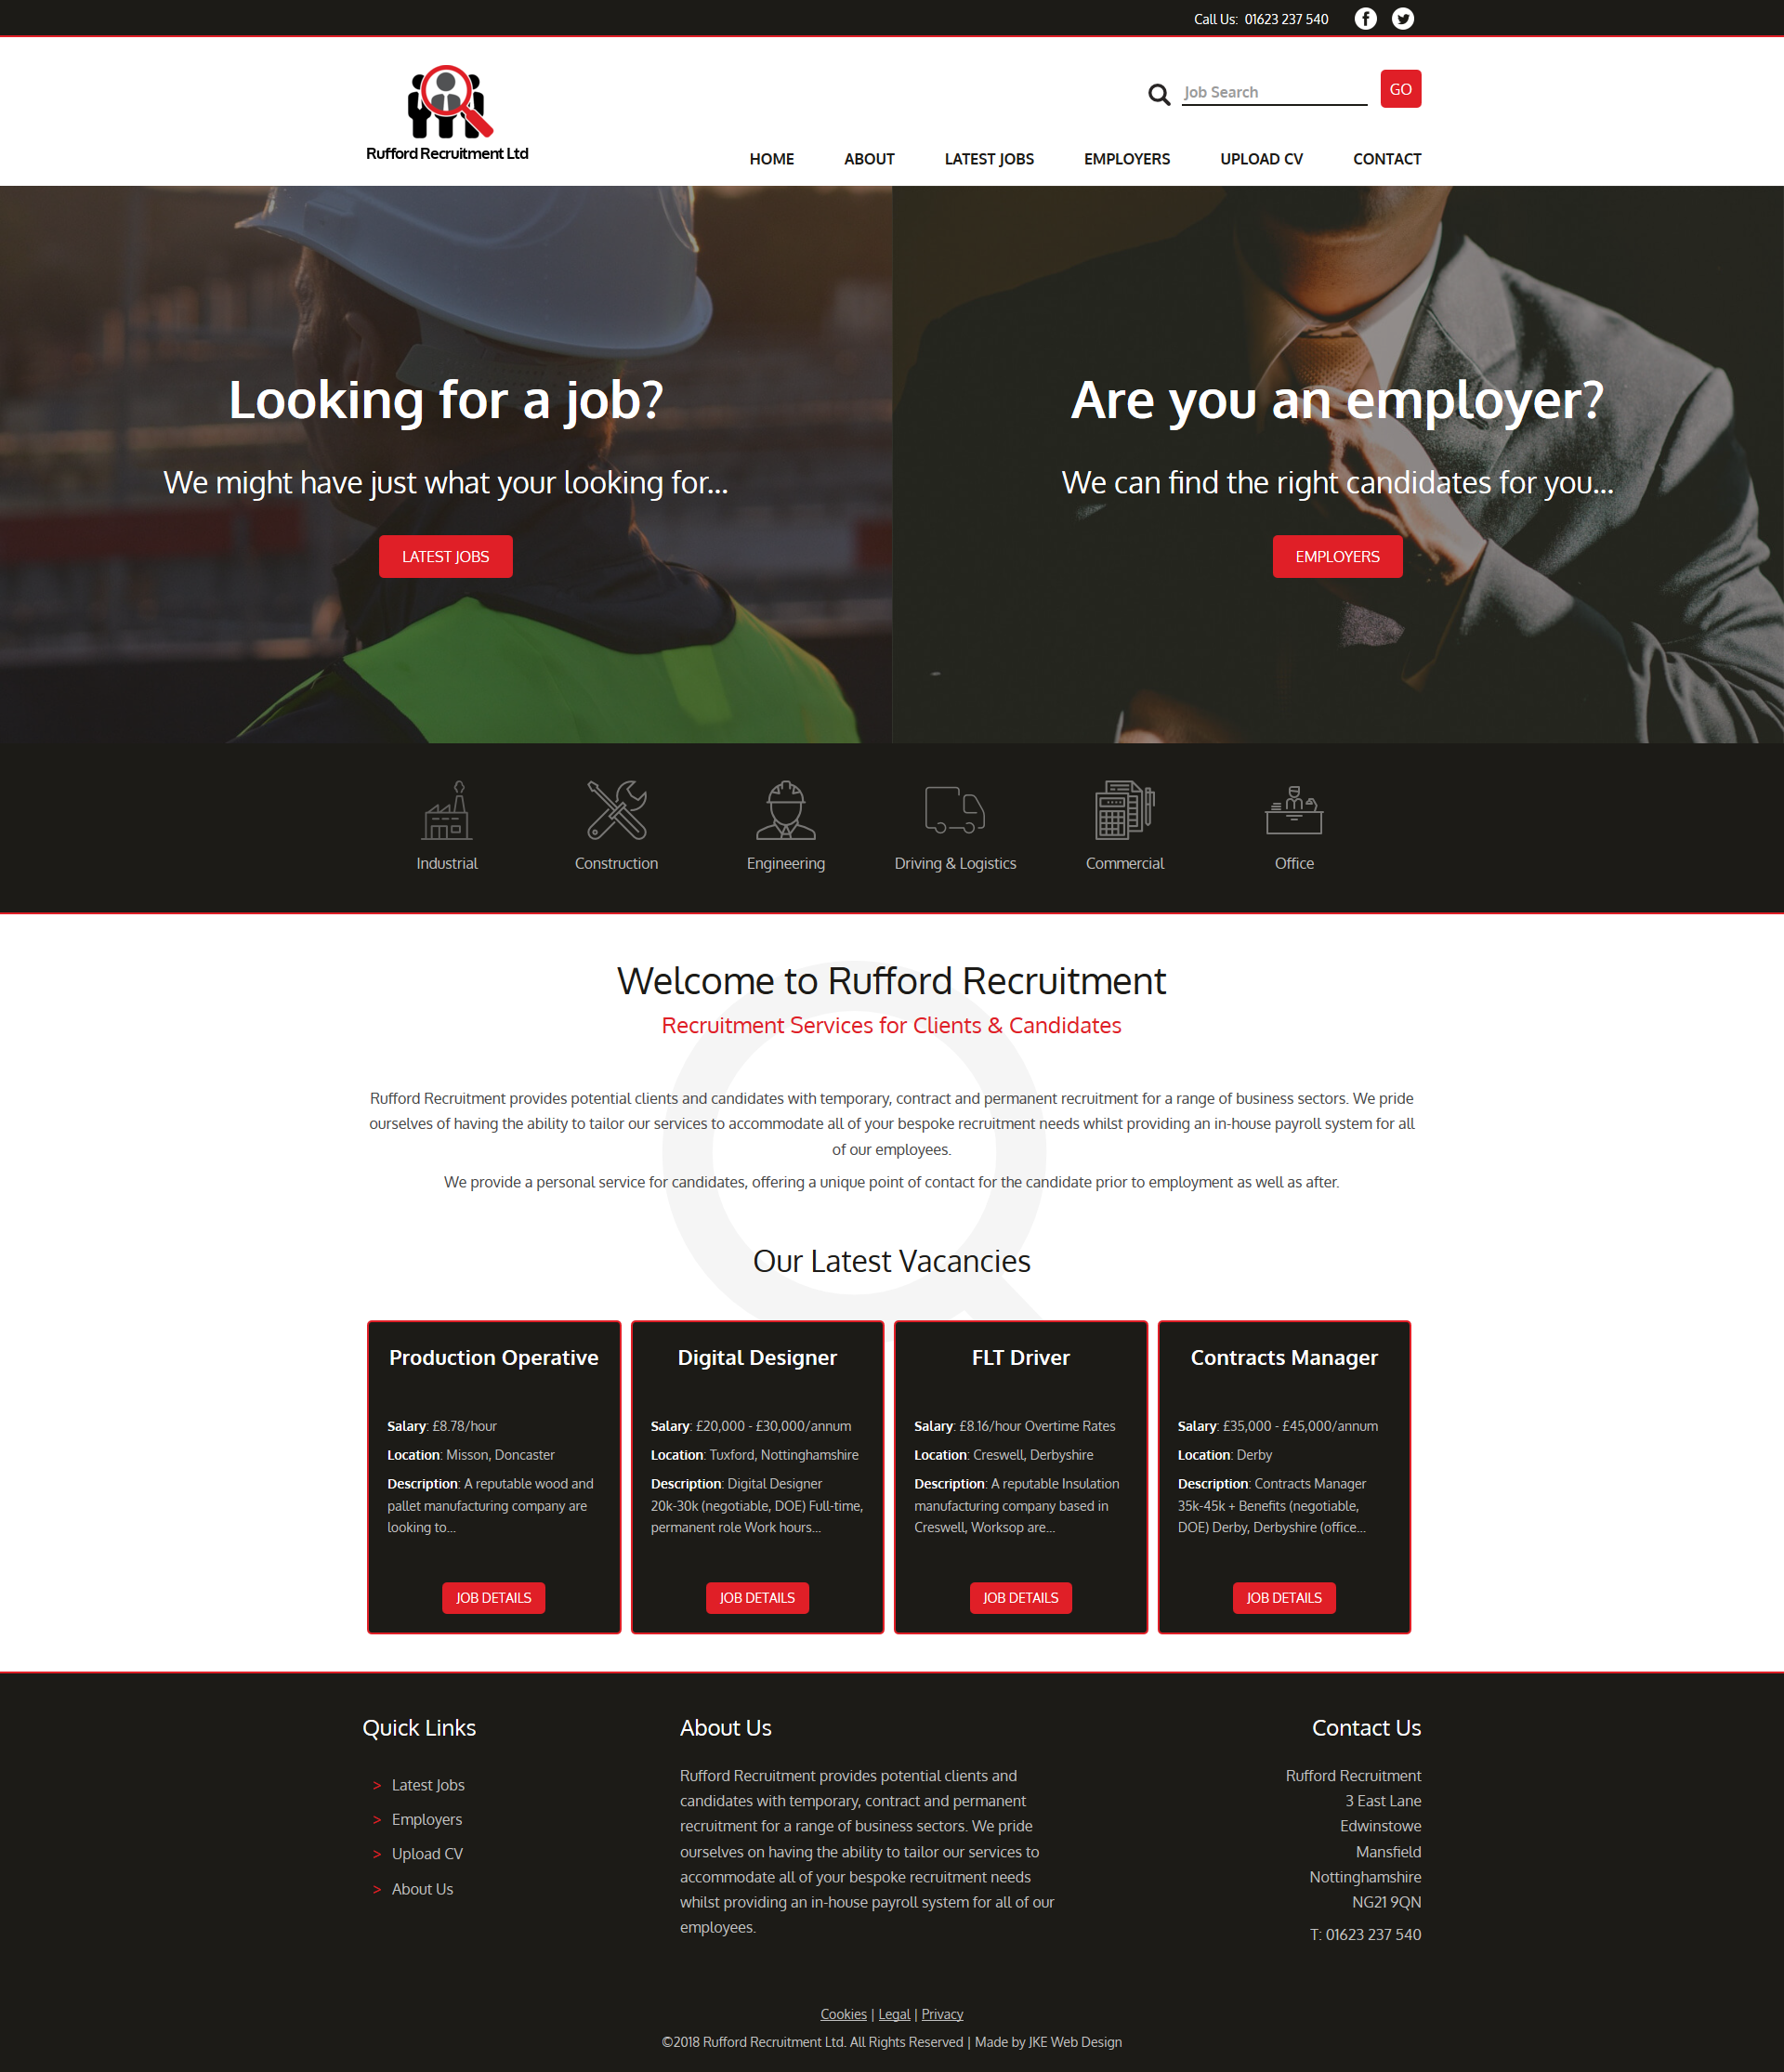 A Recruitment Website Using Red Black And White